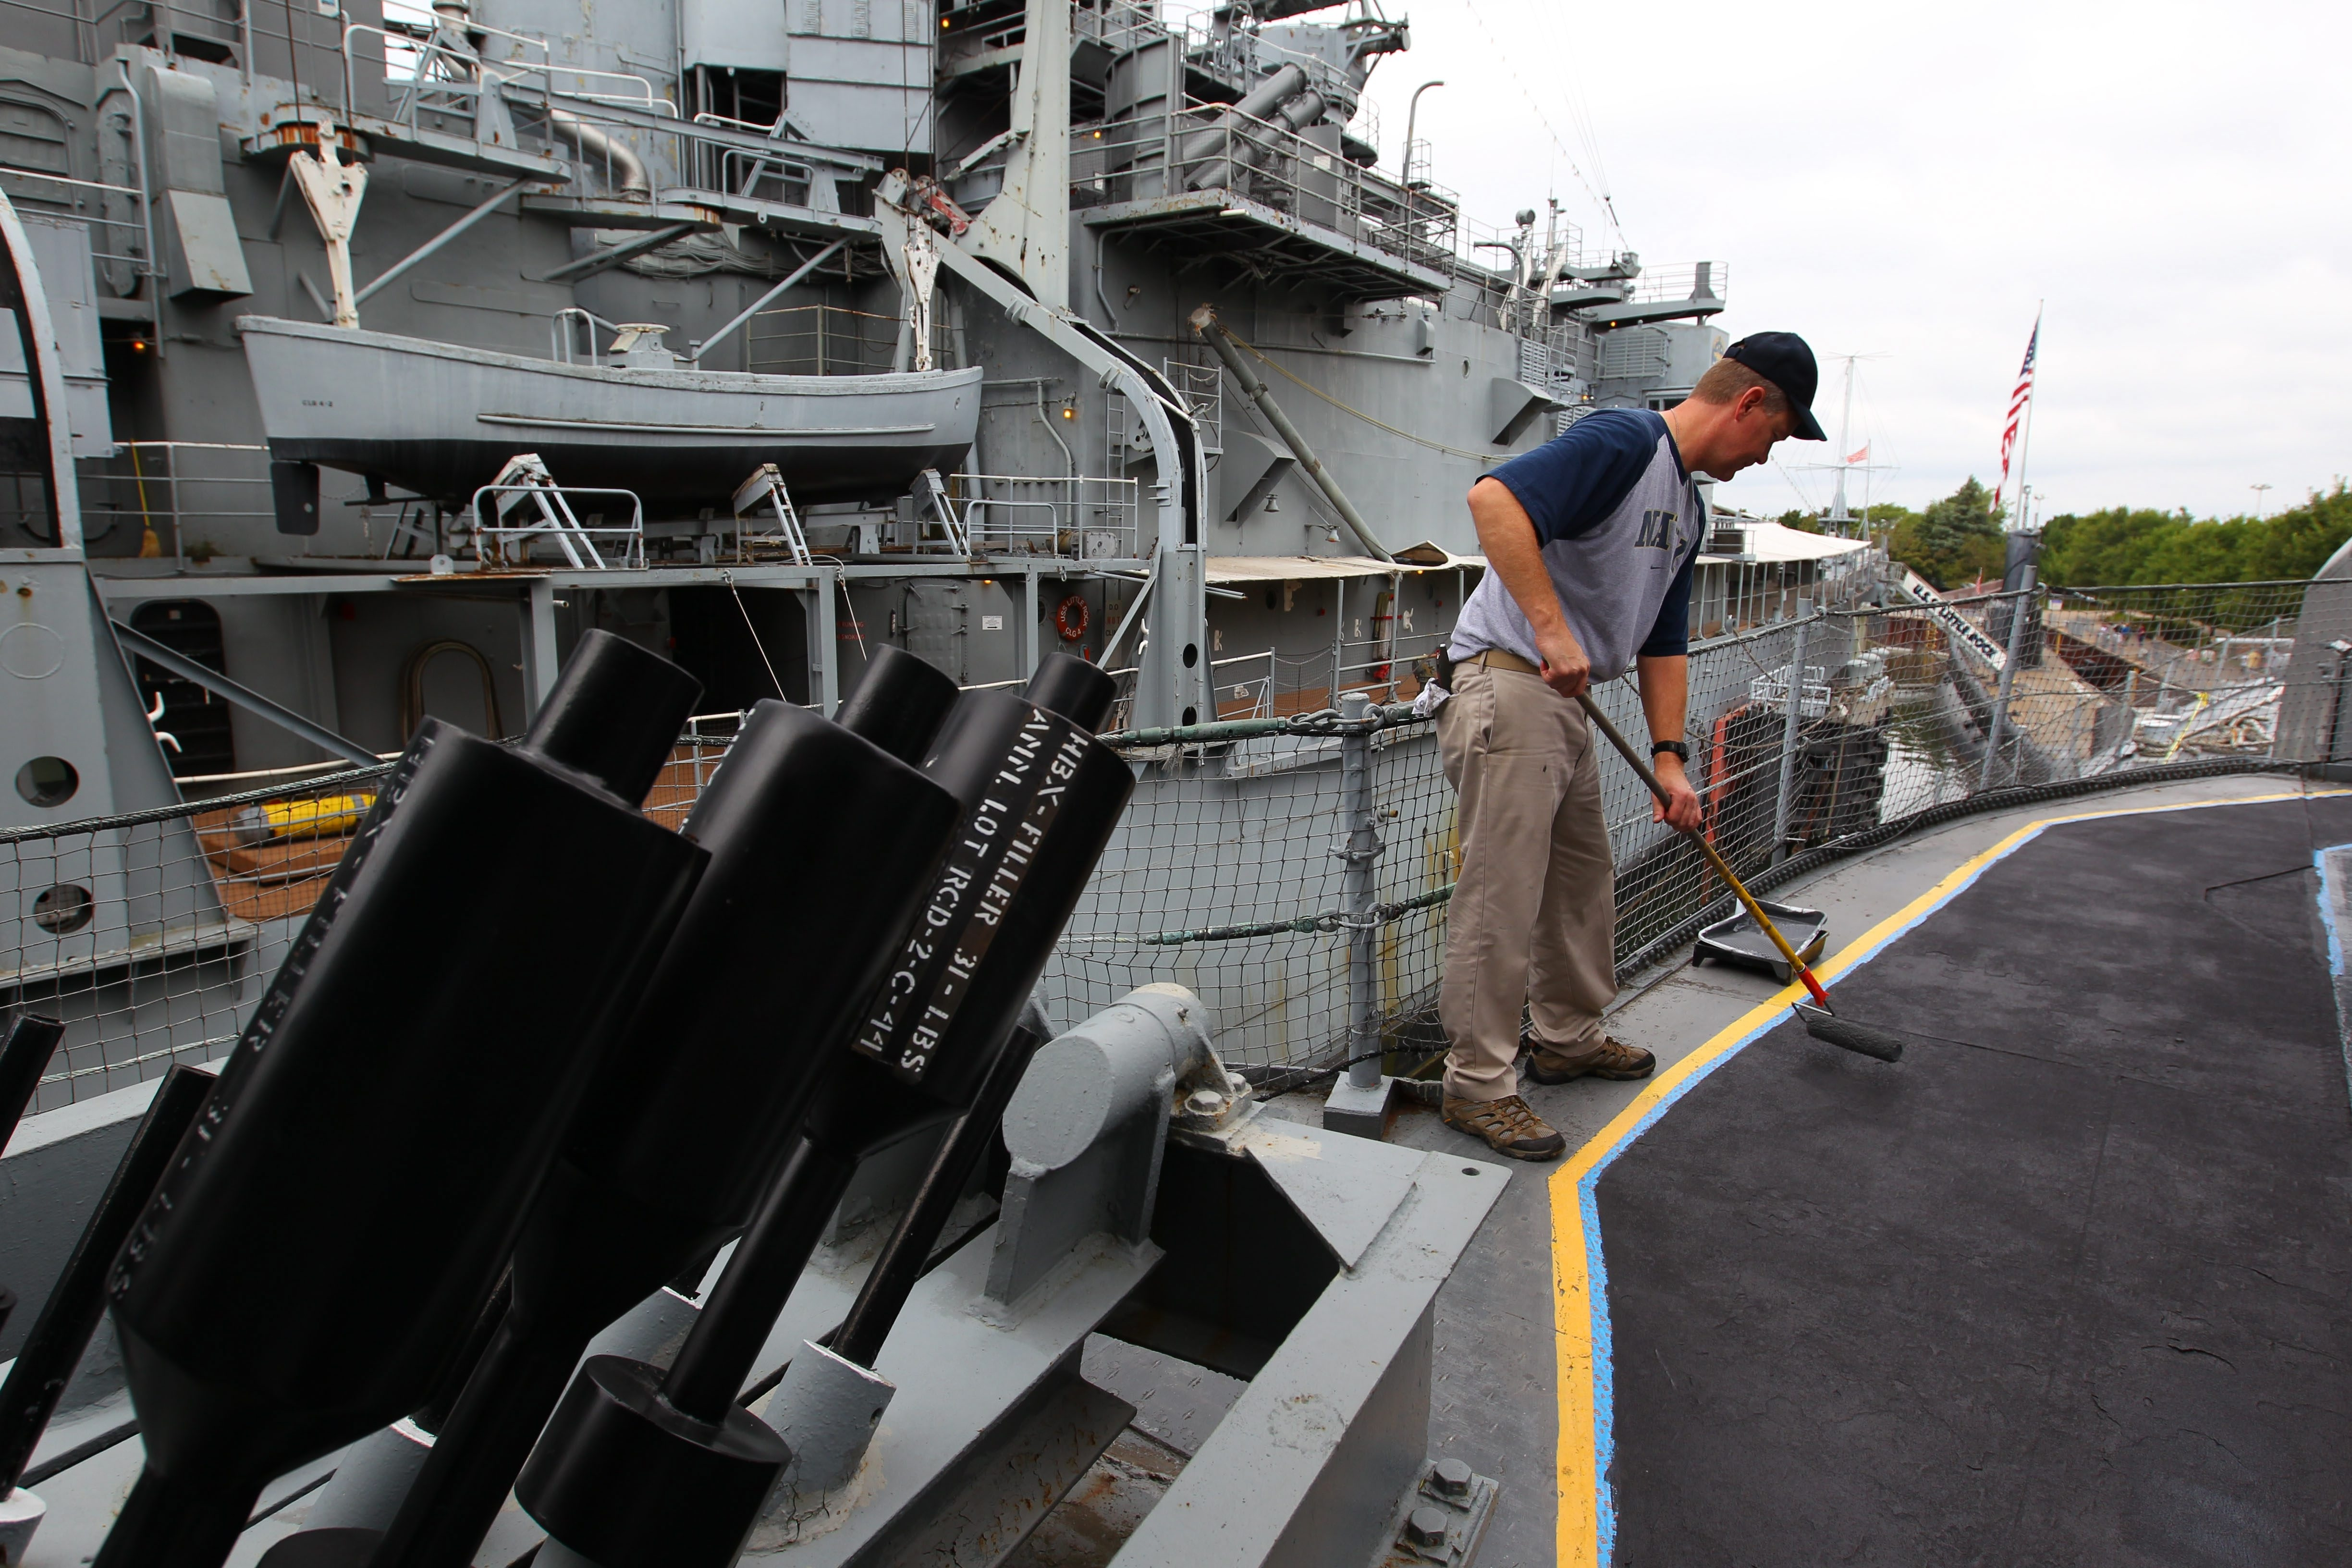 Paul Lester of Orchard Park, one of the Tin Can Sailors, paints a walkway on the USS The Sullivans on Saturday.